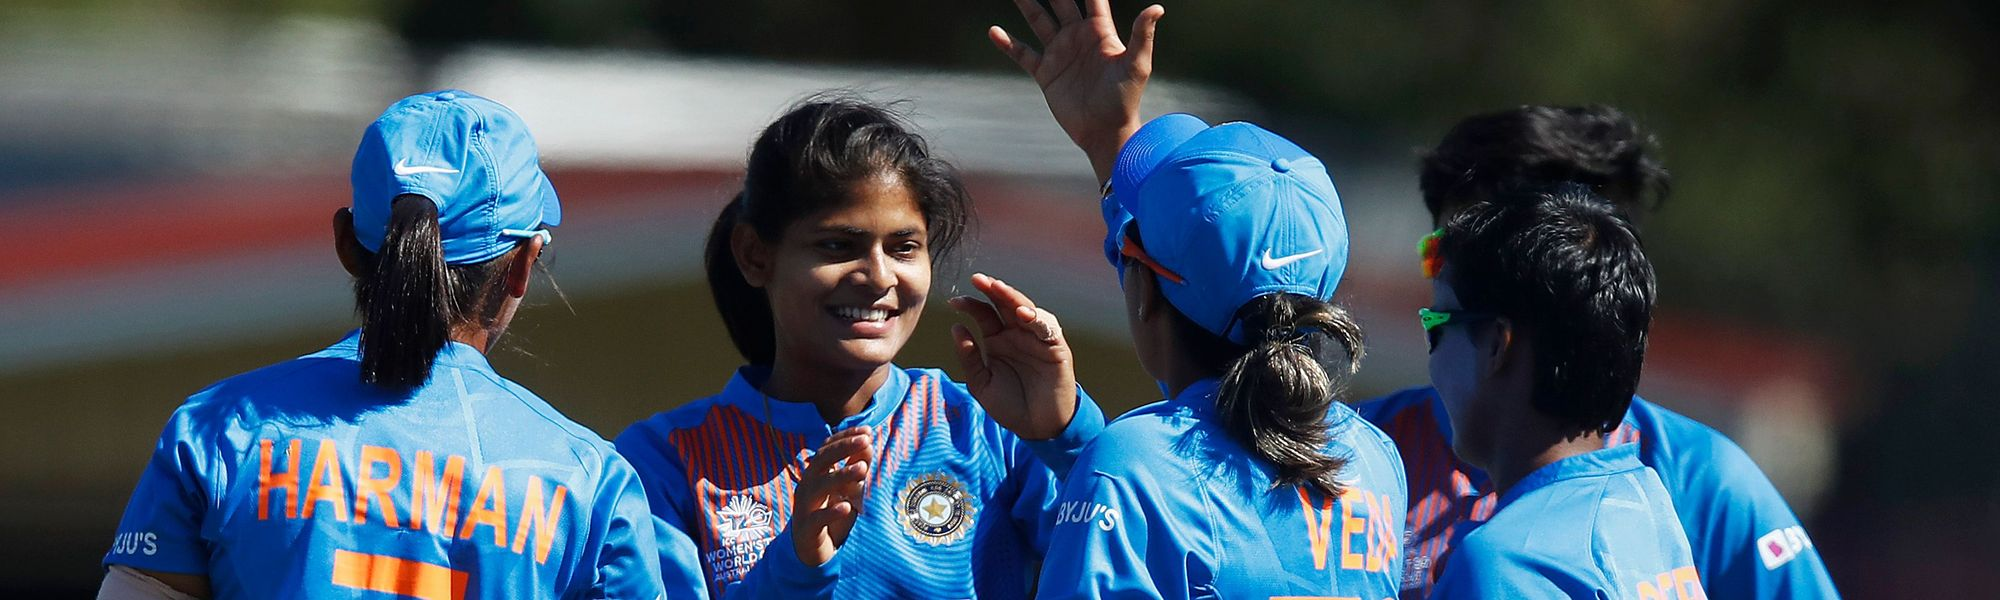 Radha Yadav of India (2L) celebrates with Veda Krishnamurthy of India (C) after combining for the wicket of Hansima Karunarathna of Sri Lanka during the ICC Women's T20 Cricket World Cup match between India and Sri Lanka on February 29, 2020.